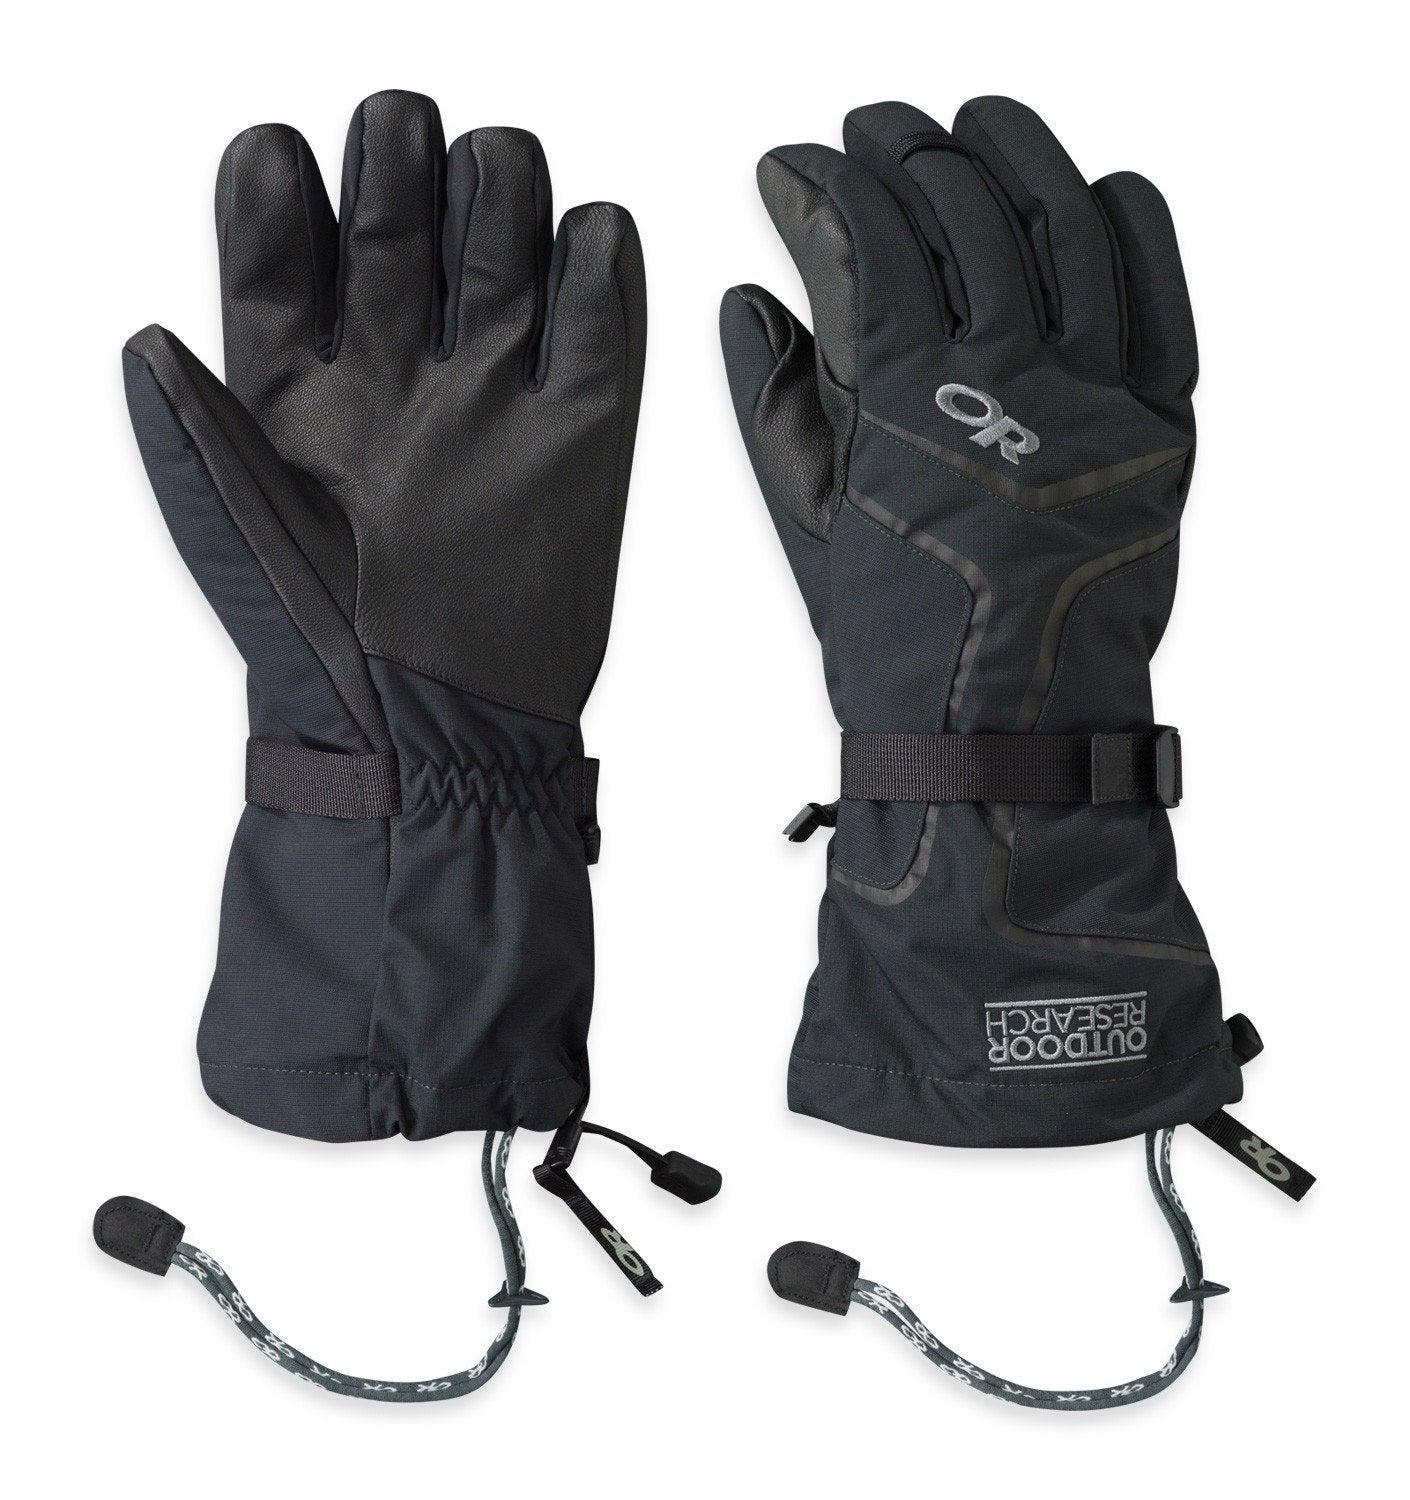 Outdoor Research HighCamp Glove